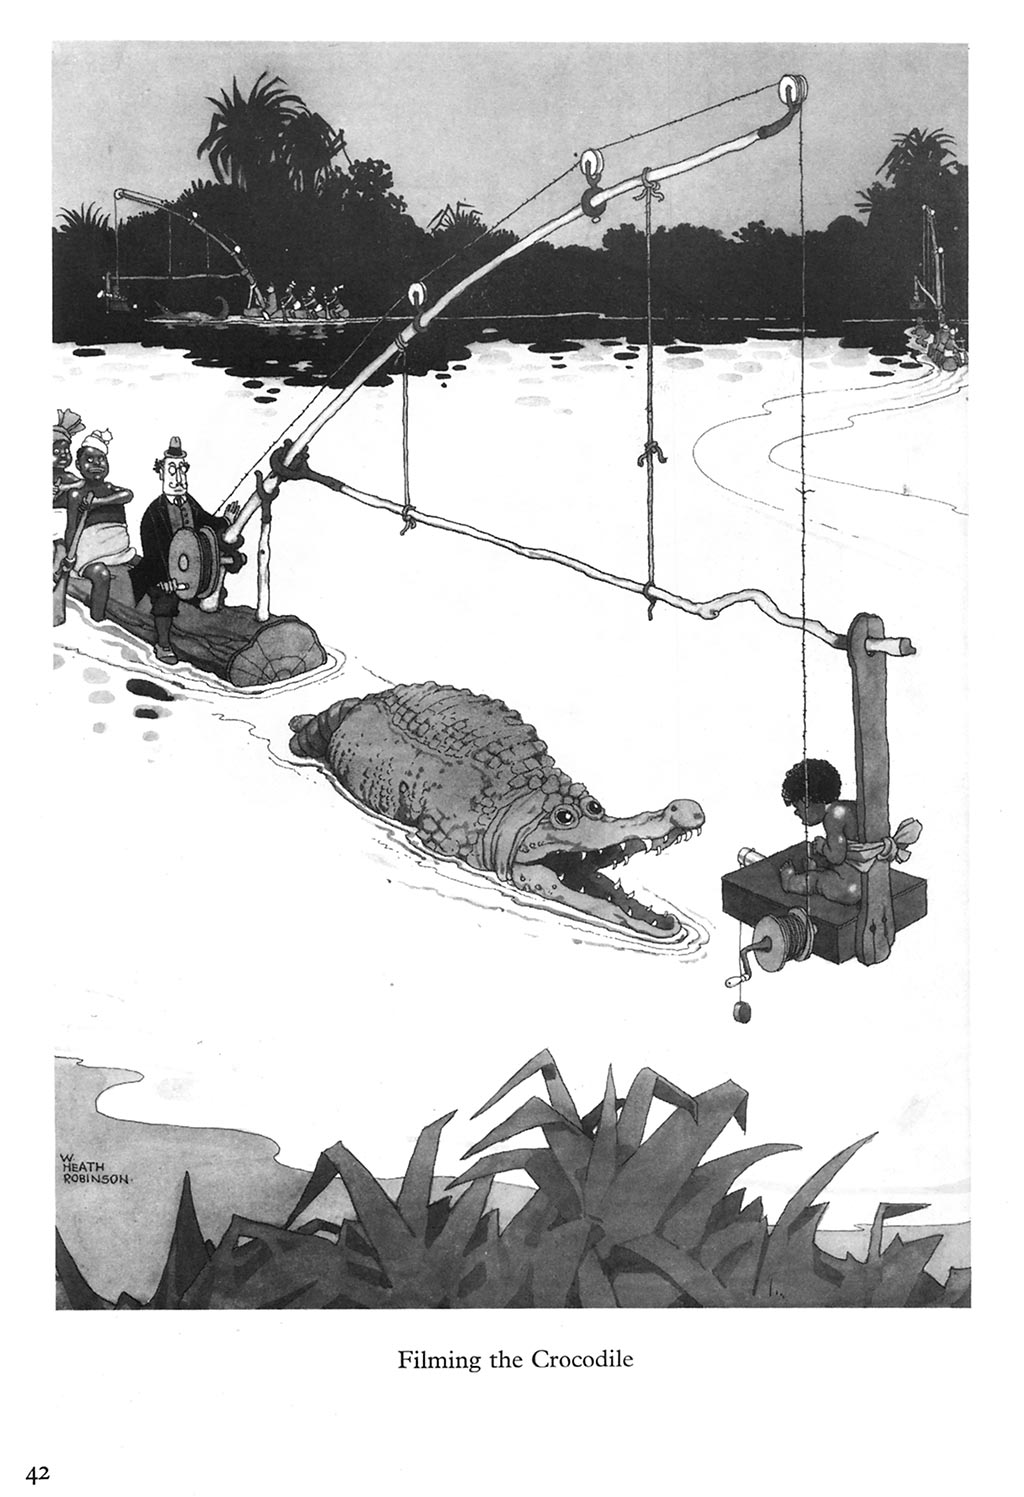 william_heath_robinson_inventions_-_page_042